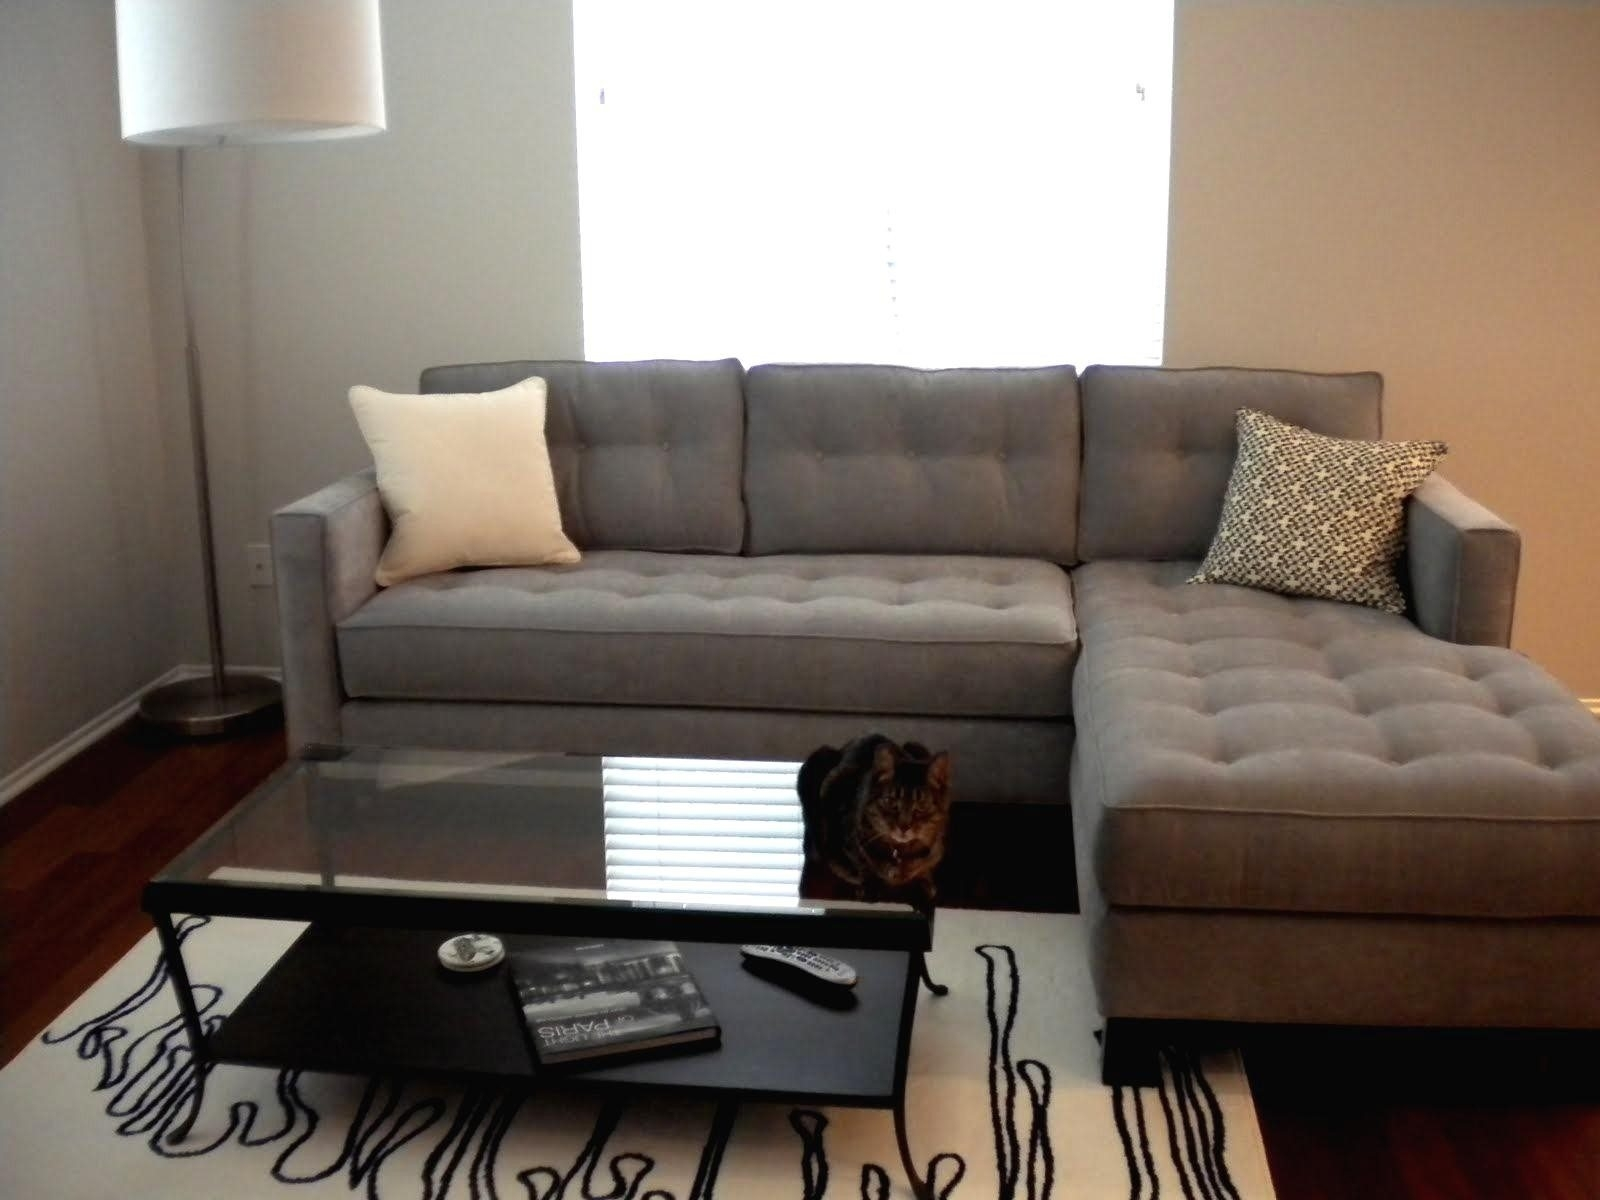 Furniture: Wayfair Sofas | Kmart Furniture Sale | Cheap Sectional In Kmart Sectional Sofas (View 5 of 10)